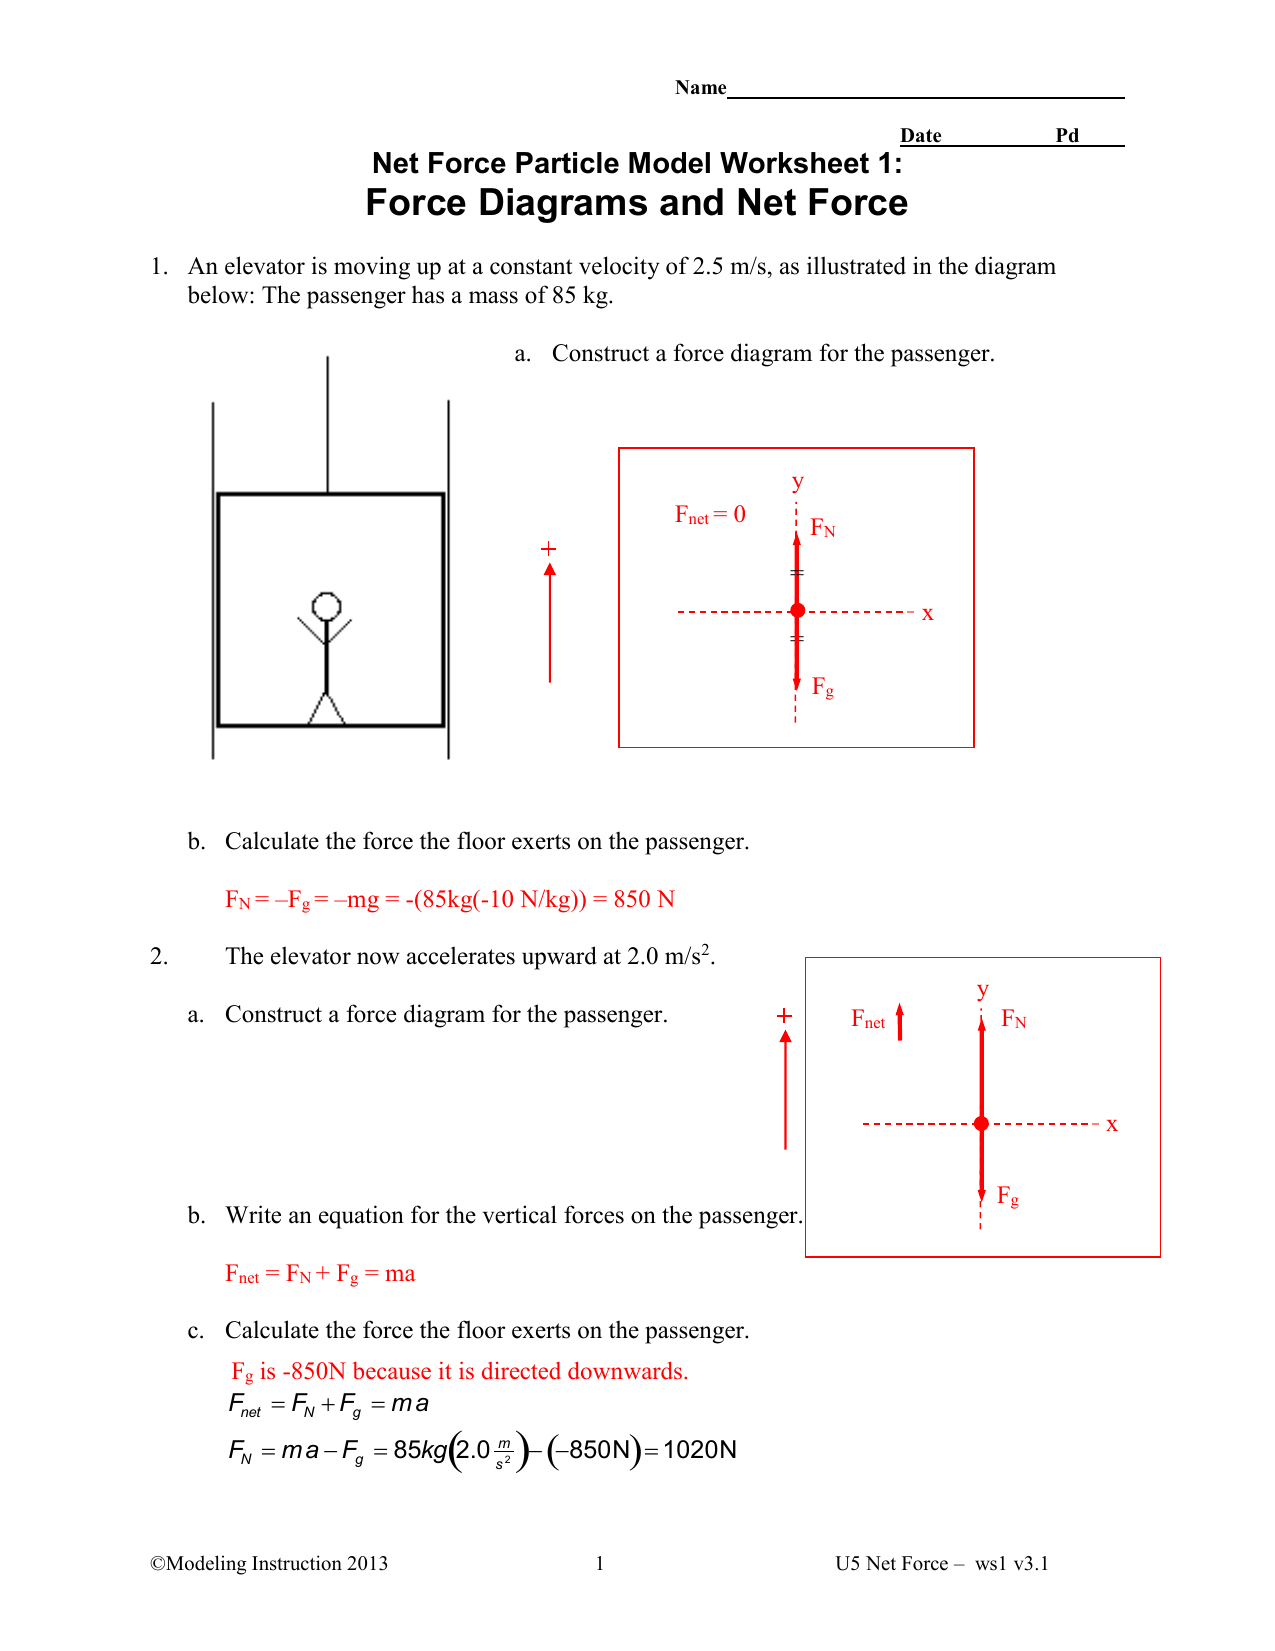 Constant Velocity Model Worksheet 4 Answers